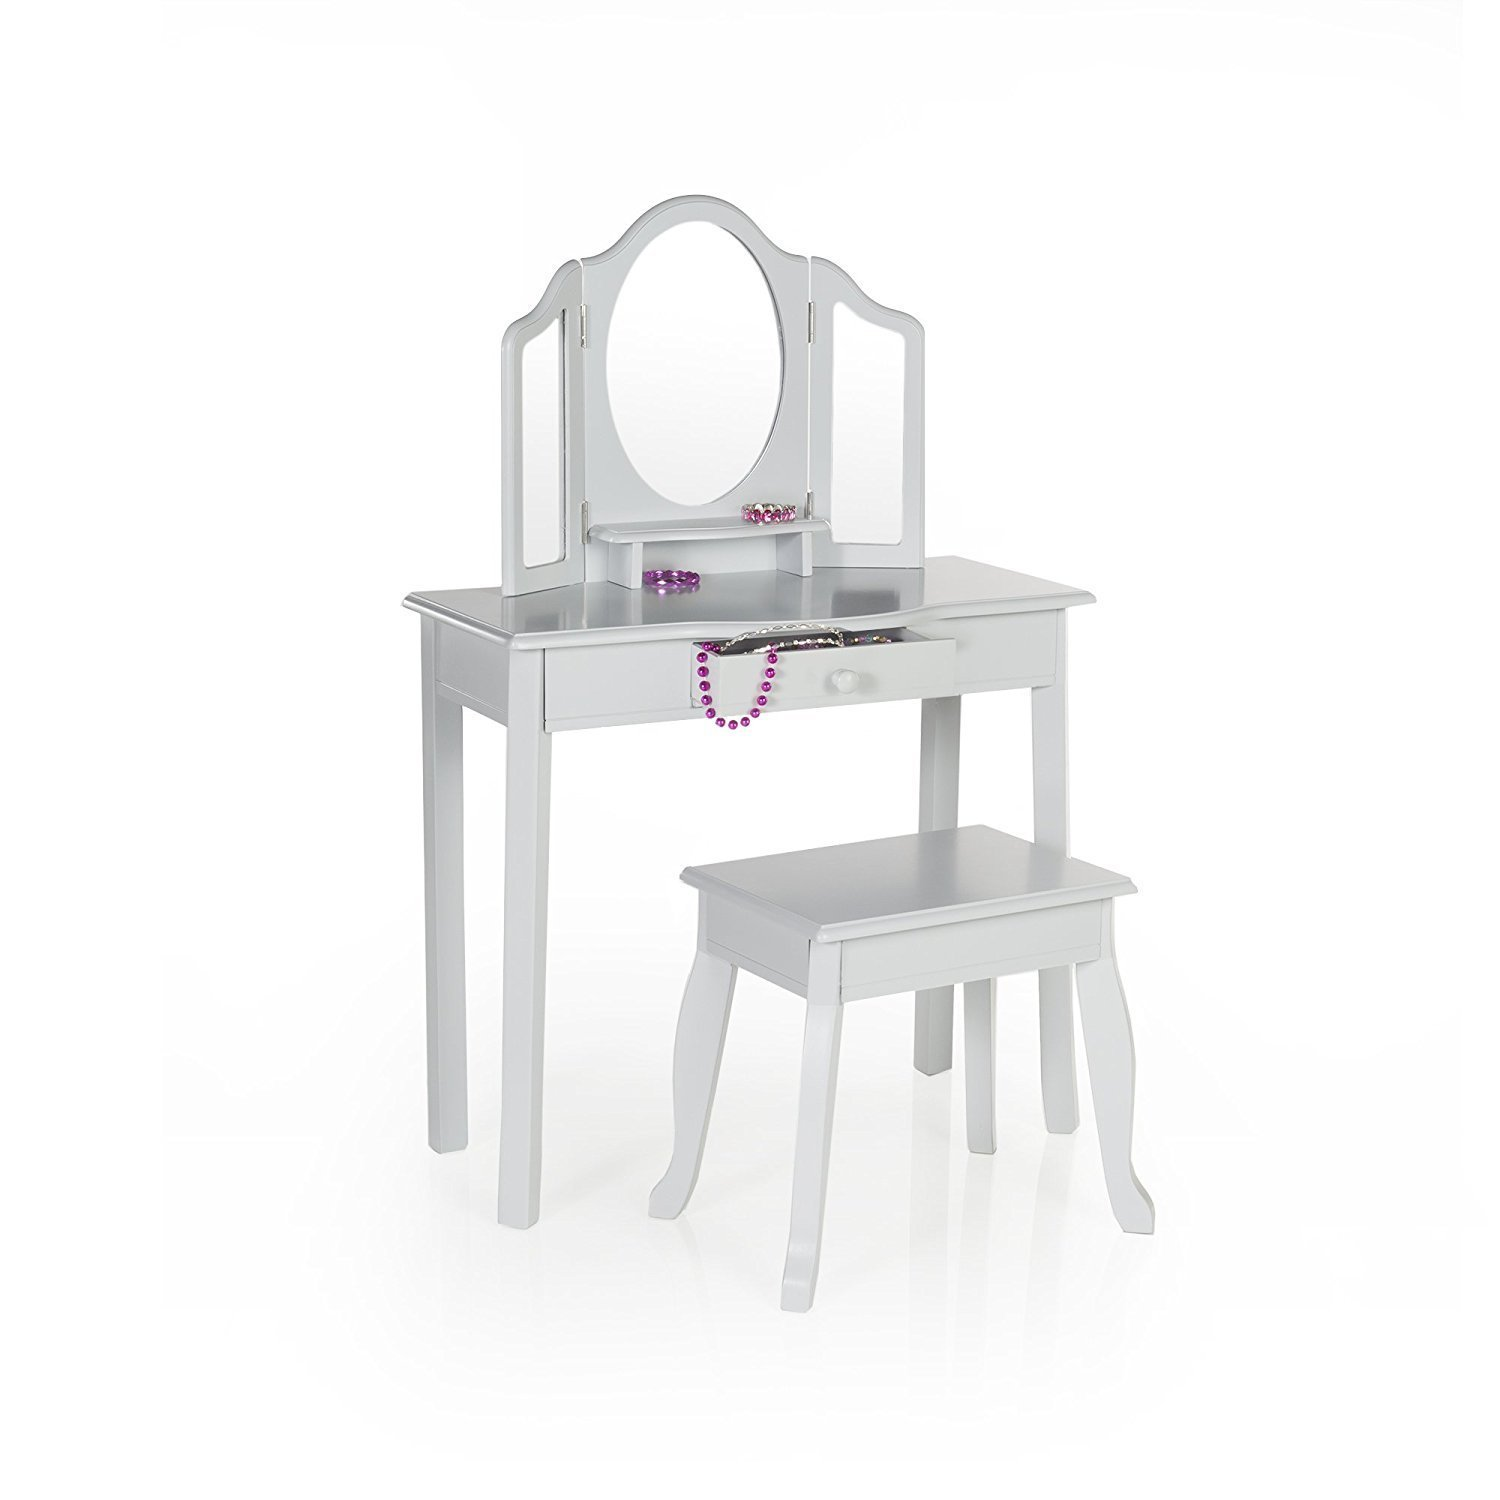 Makeup Tables And Chairs Makeup Tables For Sale Home Furniture Design